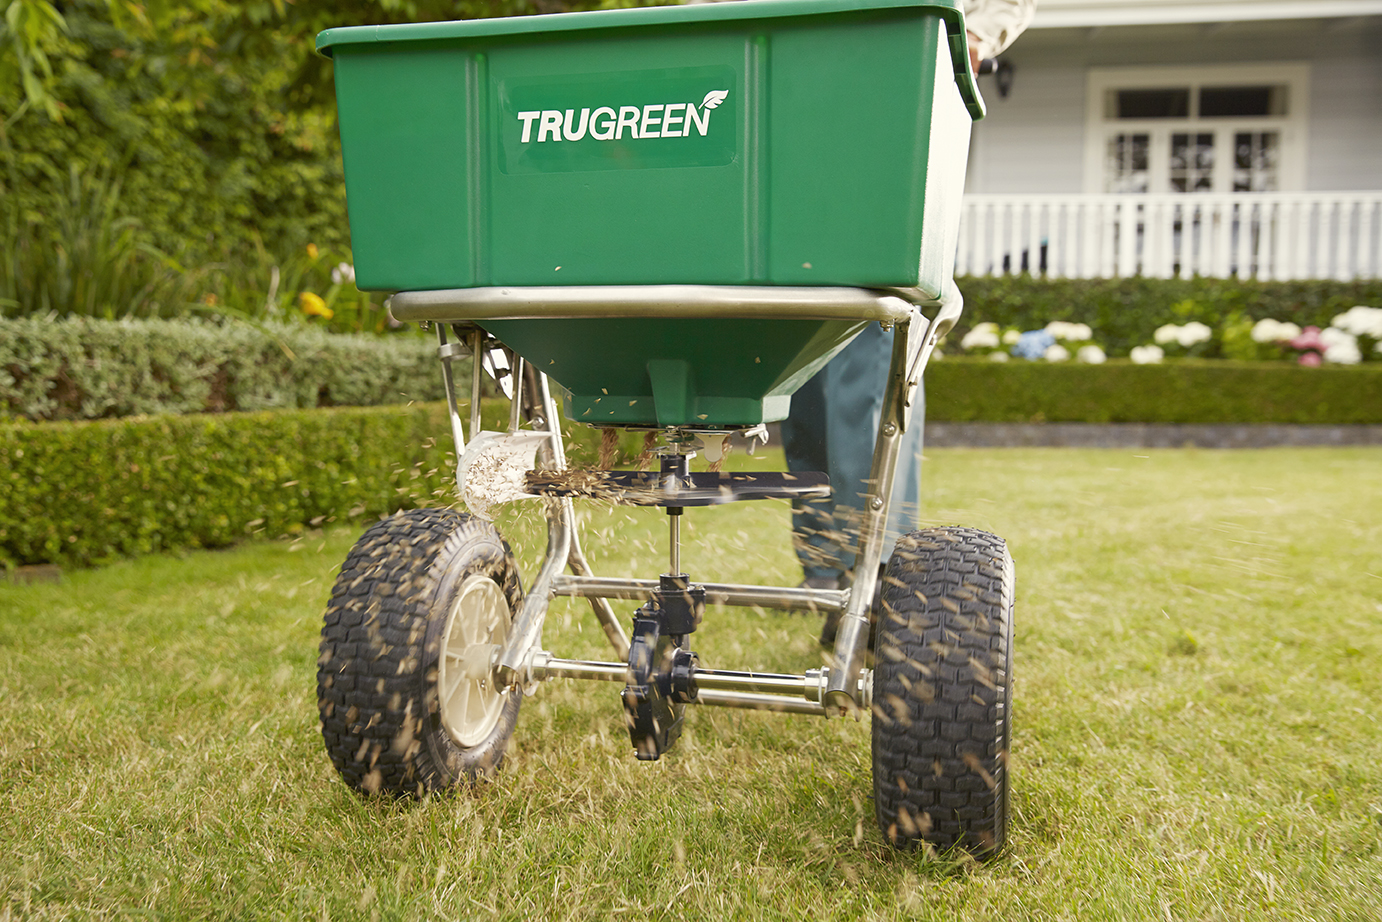 The spreader in lawn used by Trugreen for distributing seeds and fertilizer